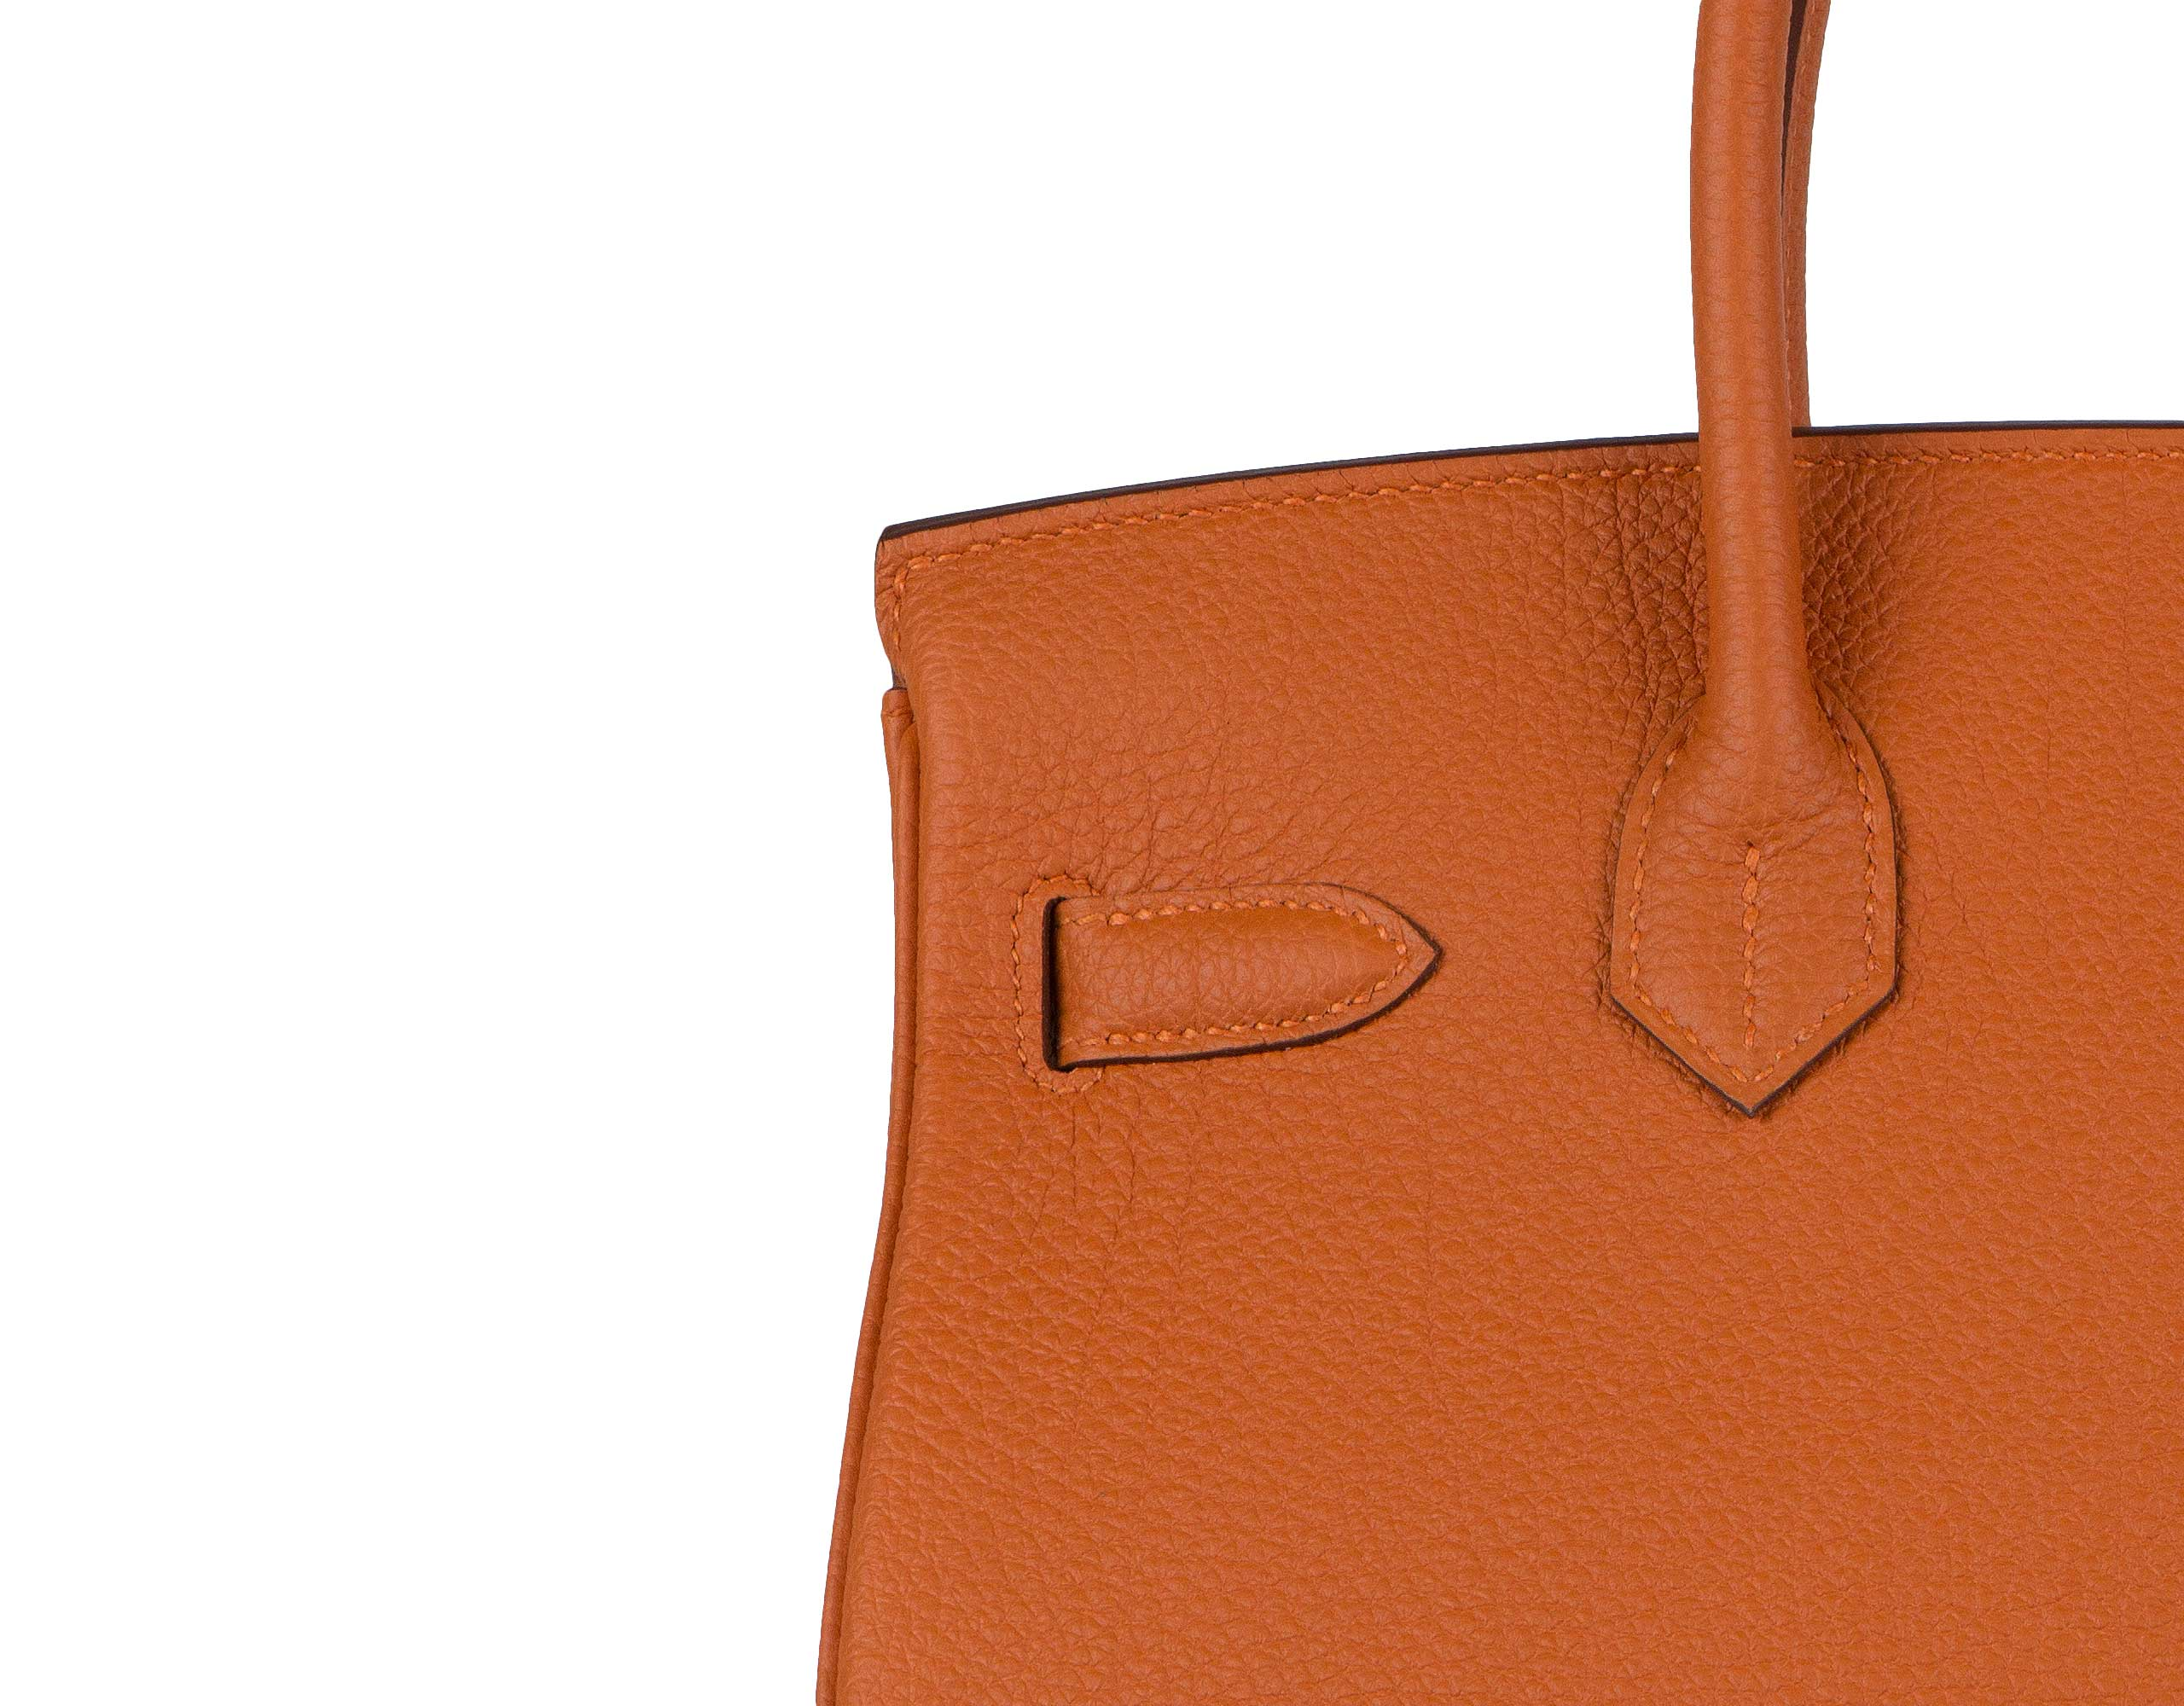 Hermes Bag Birkin Orange Togo 30cm B125 Stitching